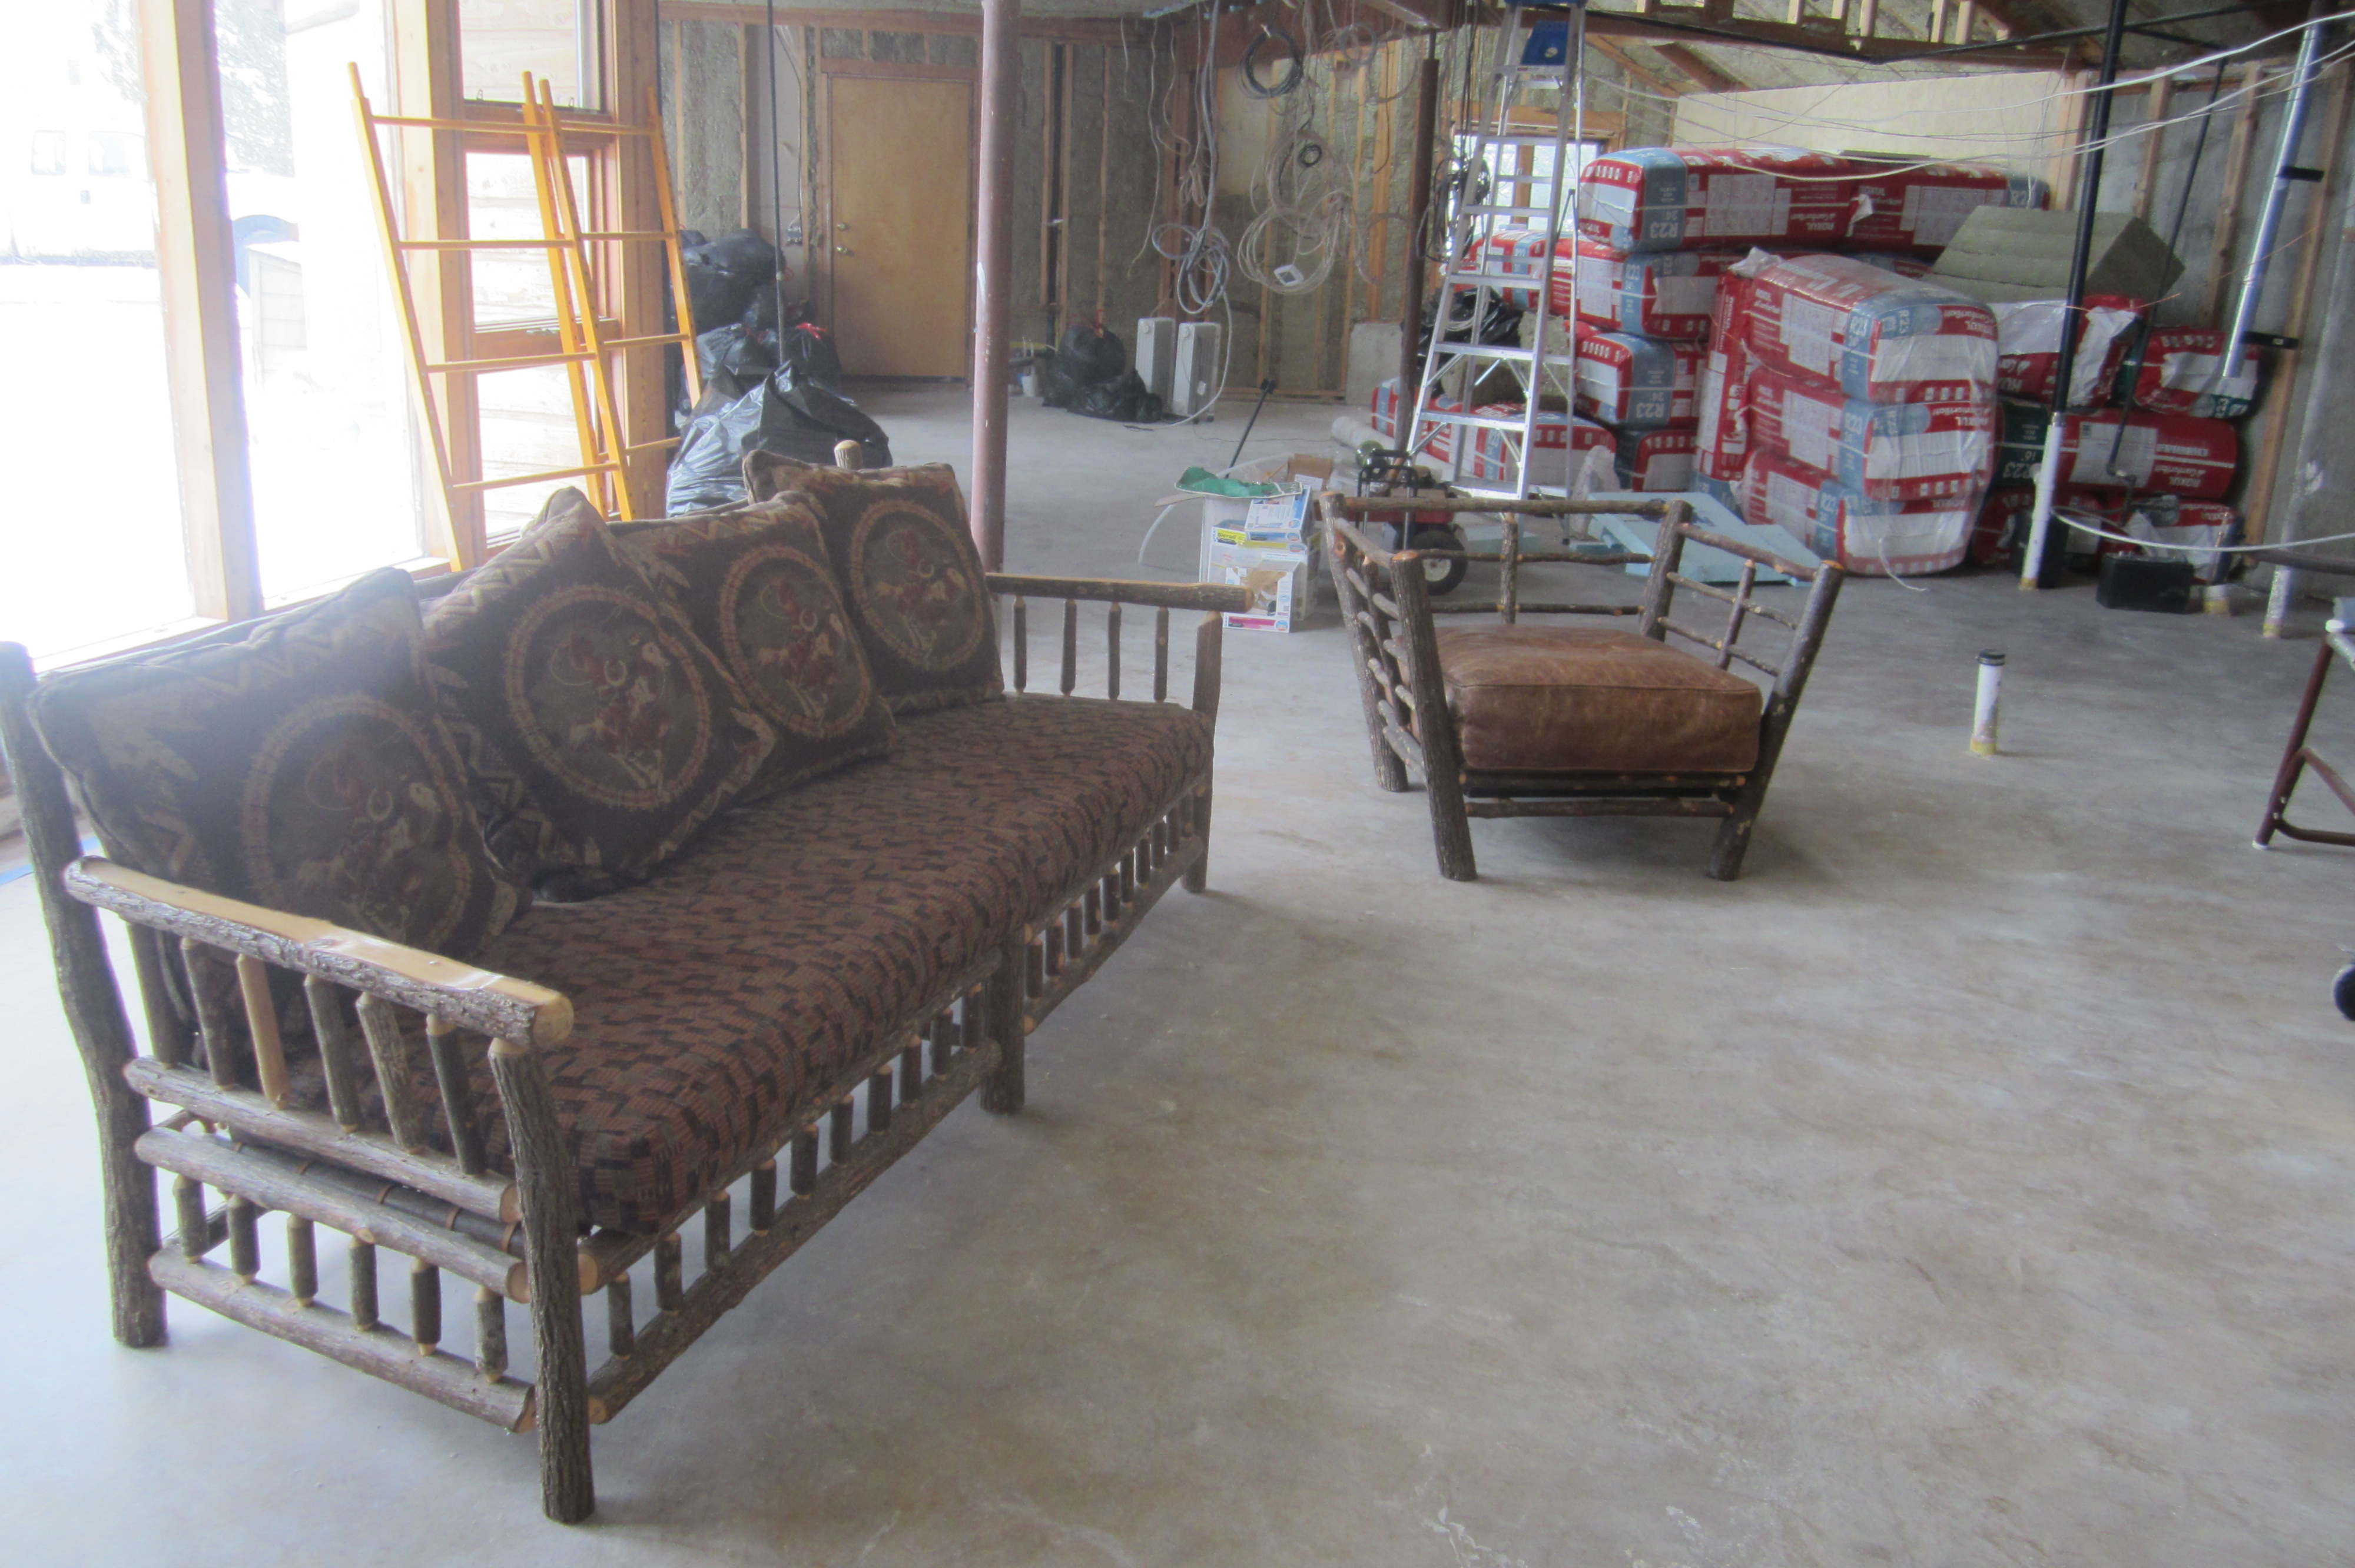 Home comfort in an unfinished house twinsprings research institute - Living room furniture your comfort is a priority ...